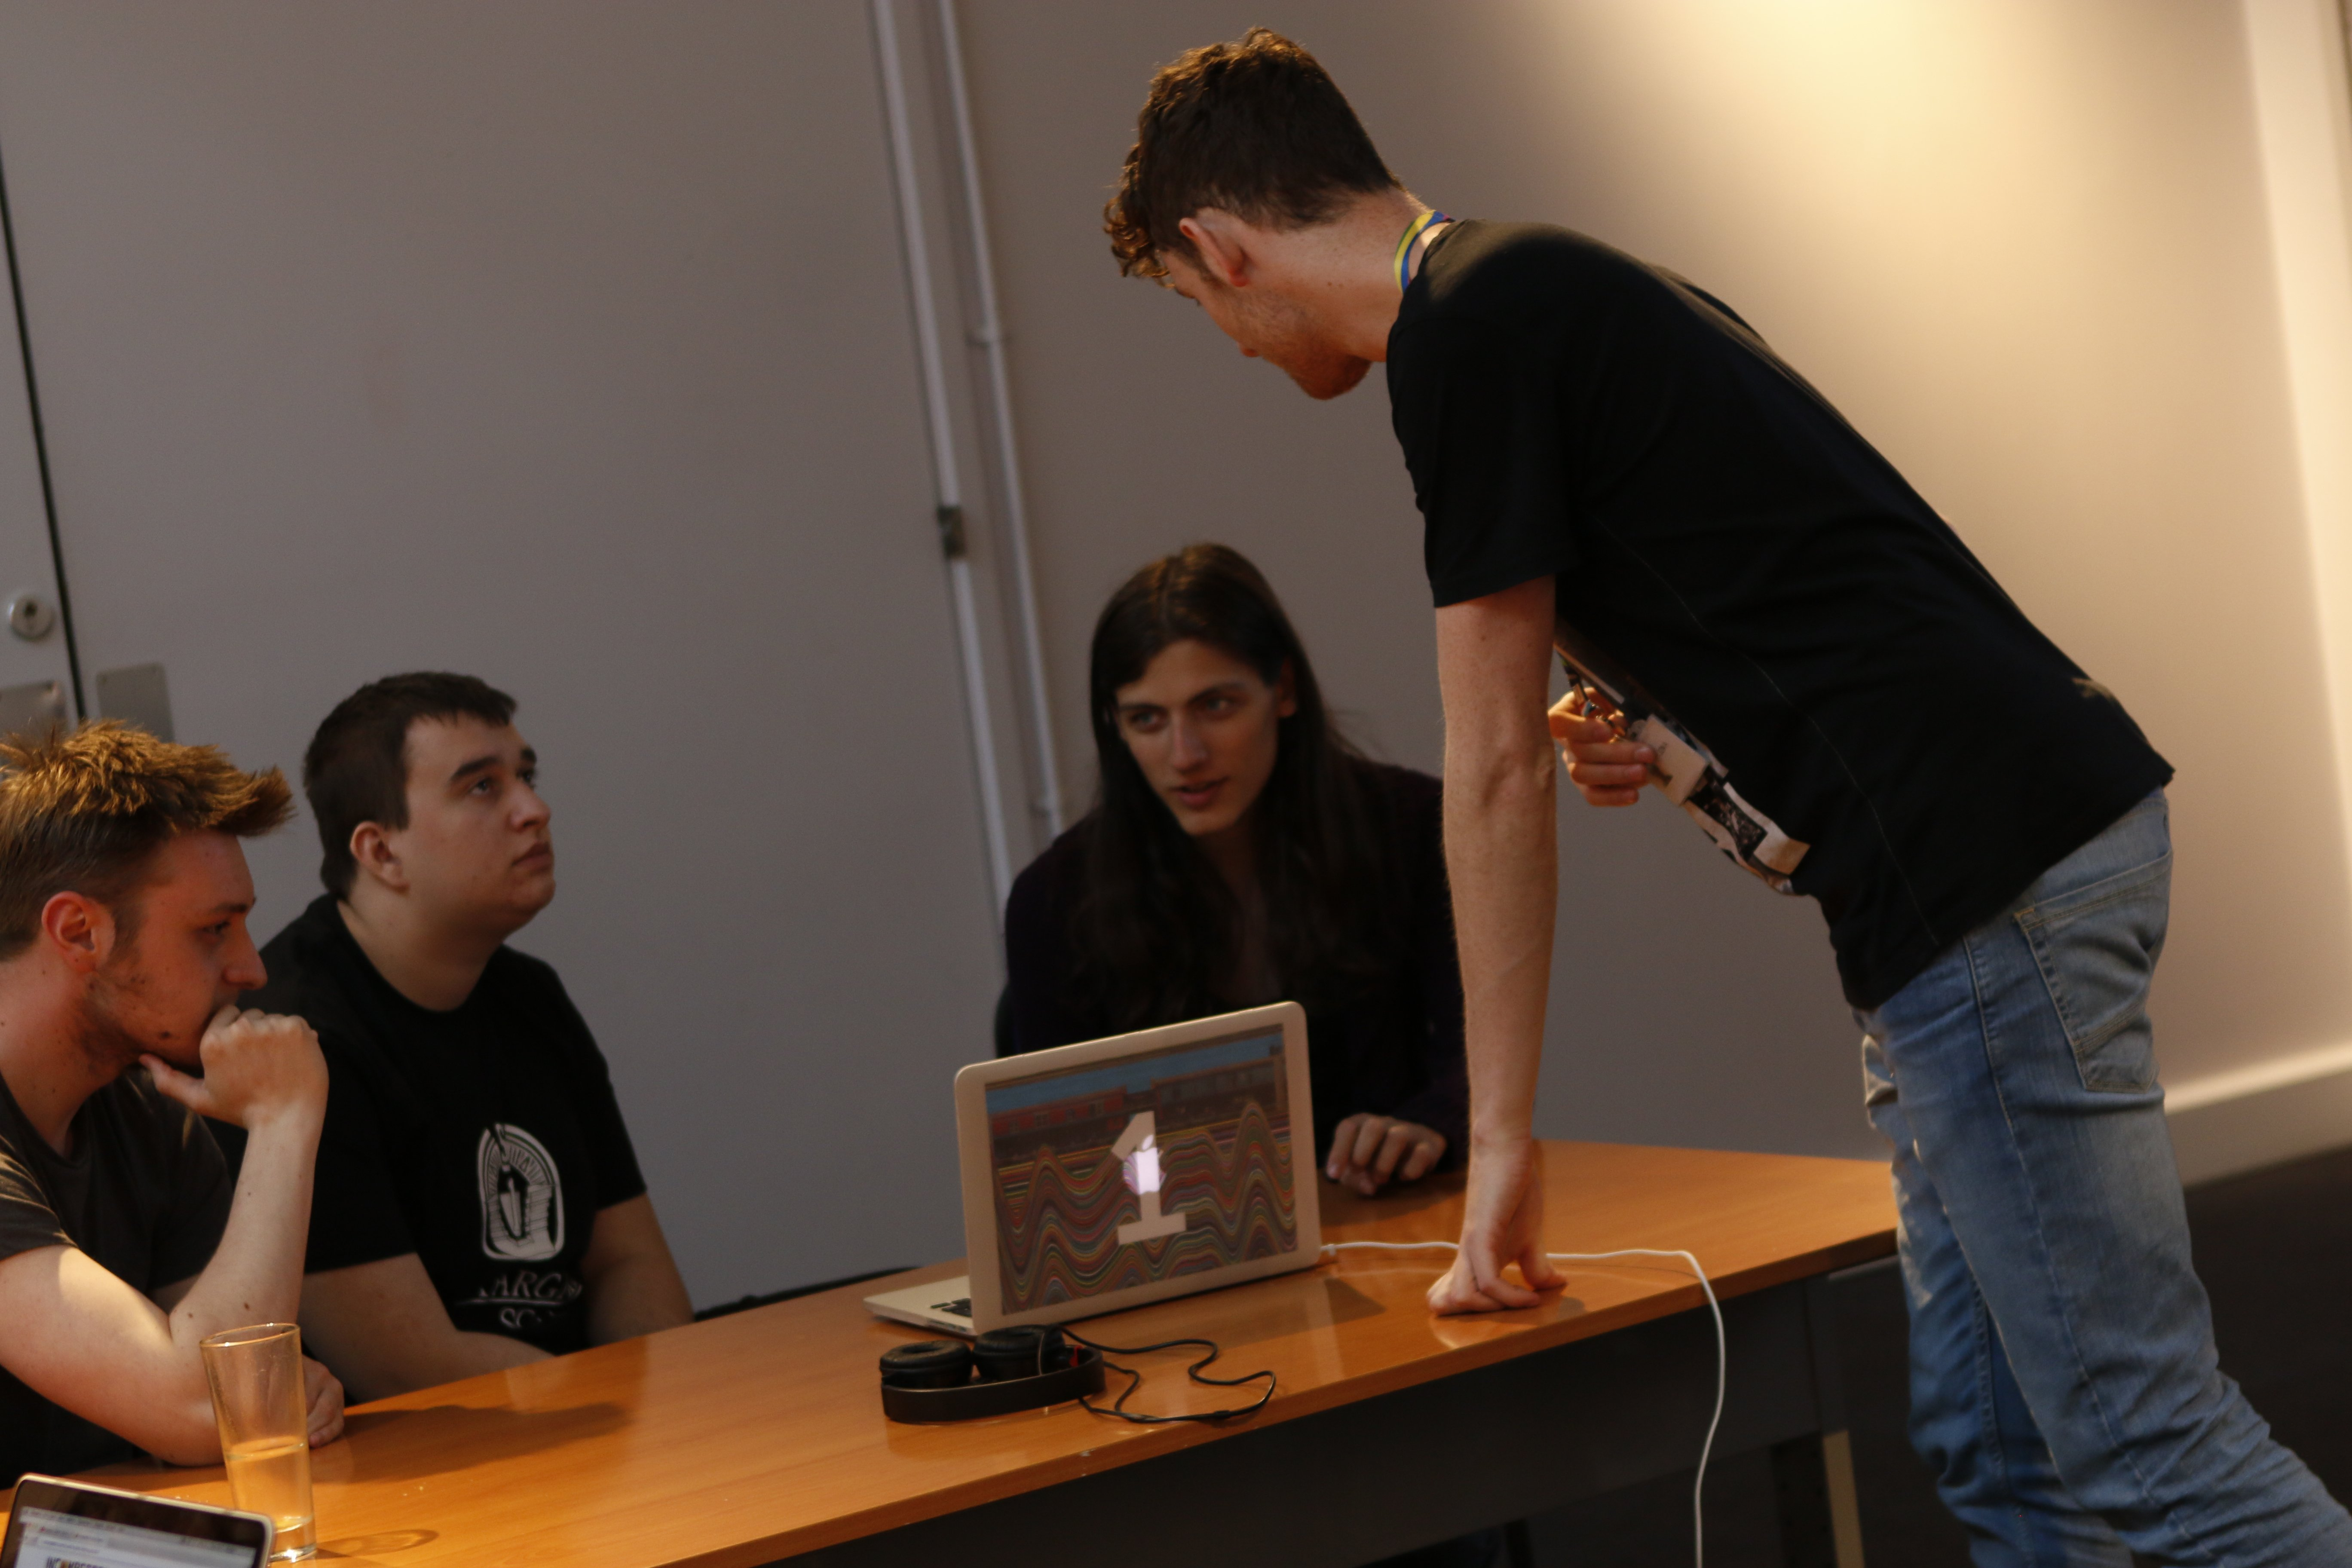 A group of young people sitting around a computer, as a staff member talks to them